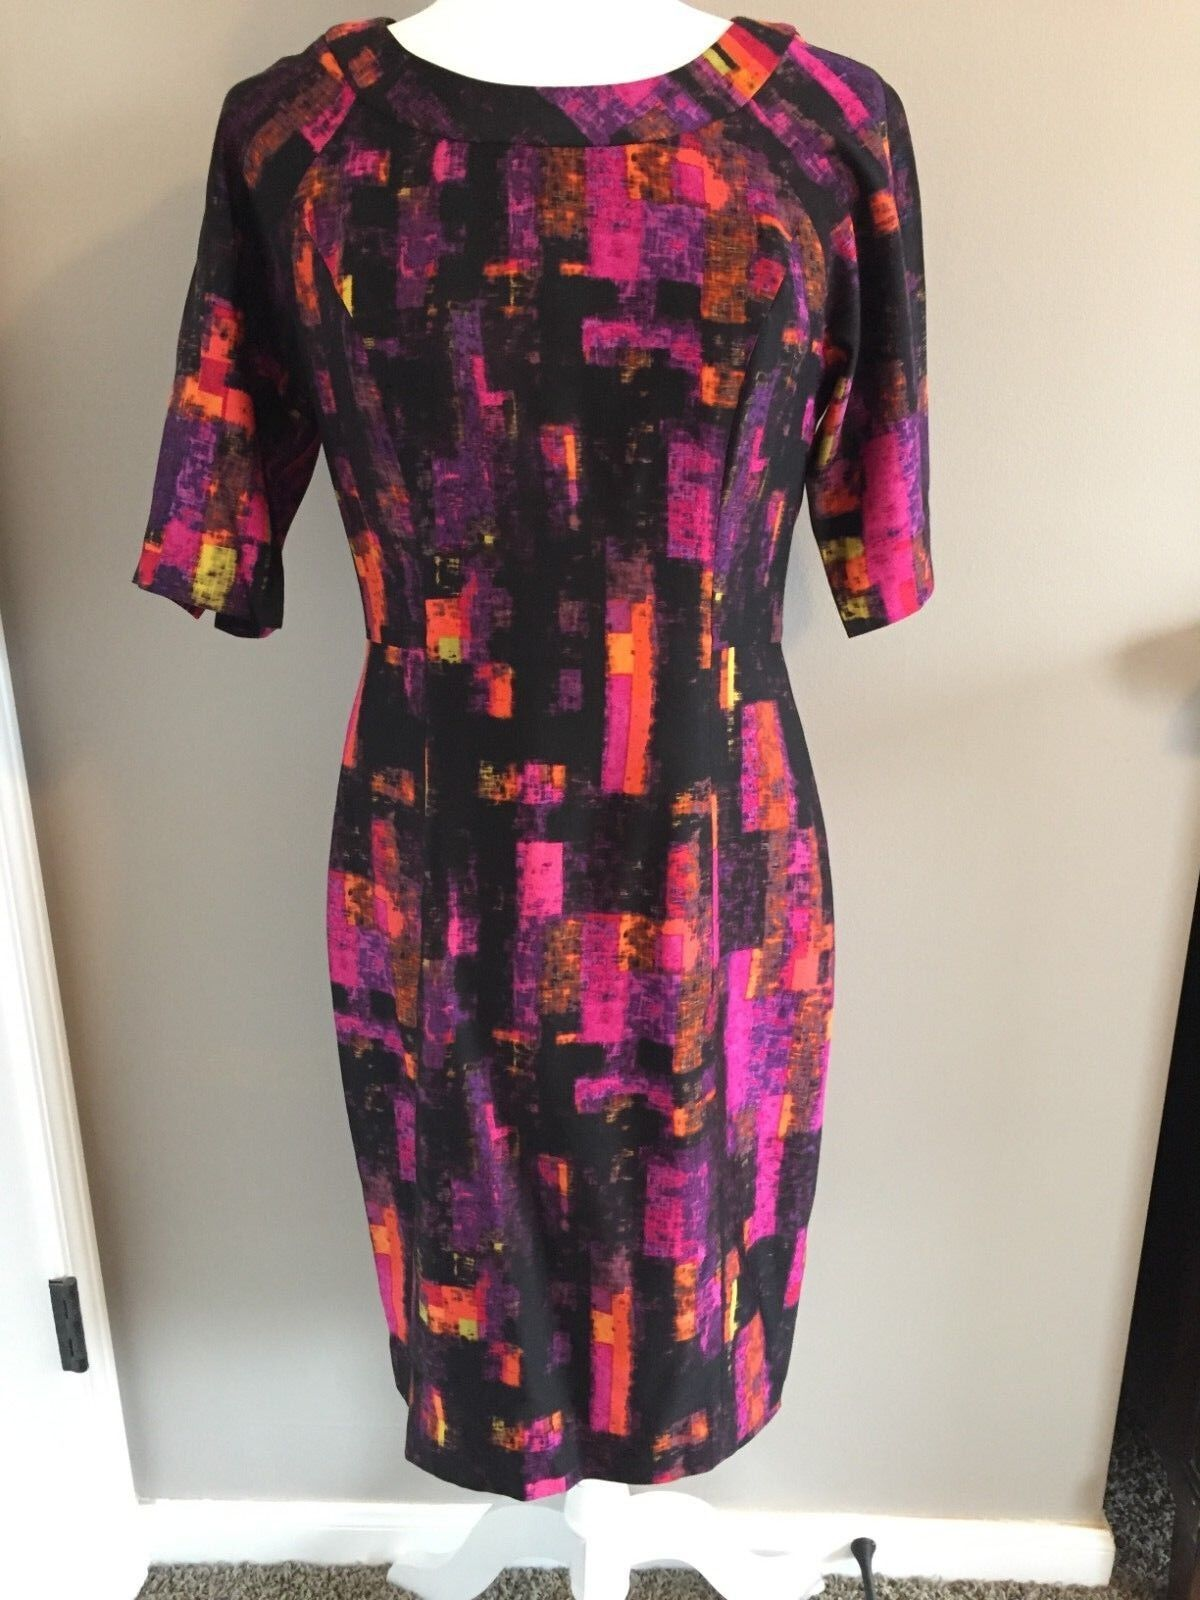 Shoshanna Size 8 Silk Blend Graphic Print Sheath Dress